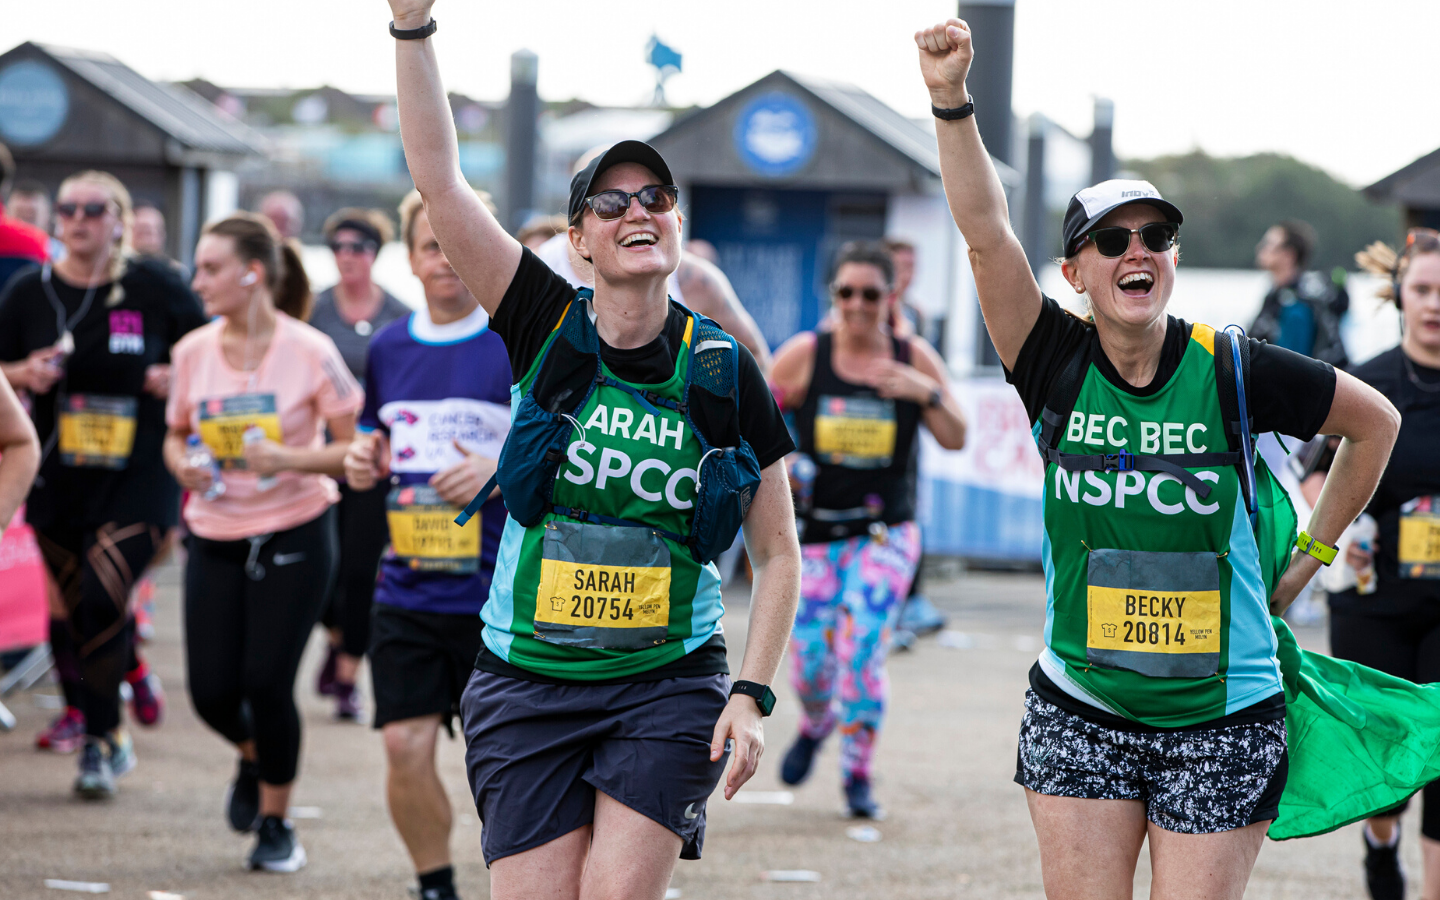 Two women in NSPCC vests reach the finish line cheering and smiling.